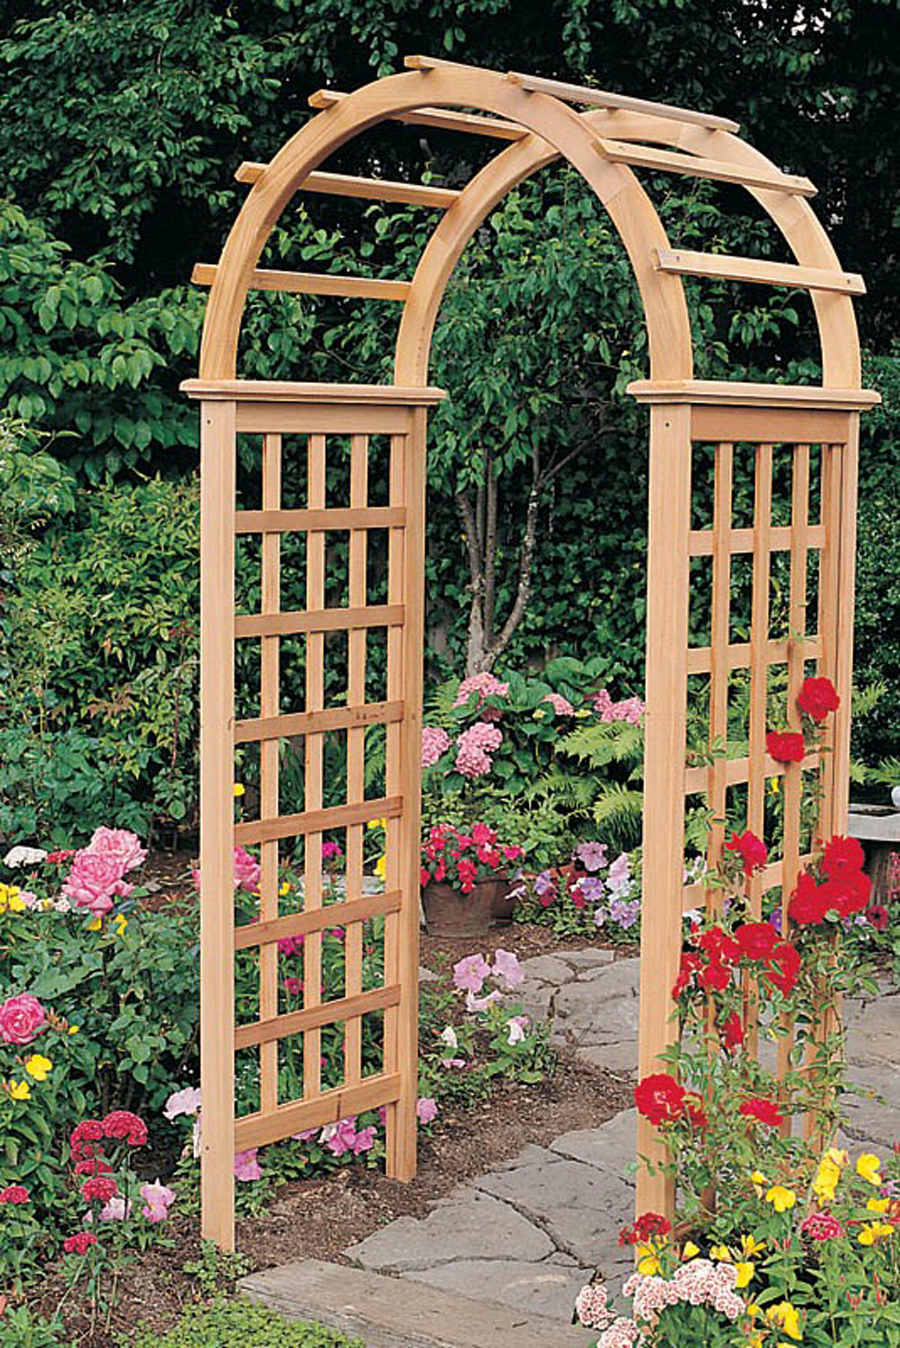 BRING LIFE TO YOUR GARDEN WITH GARDEN ACCESSORIES